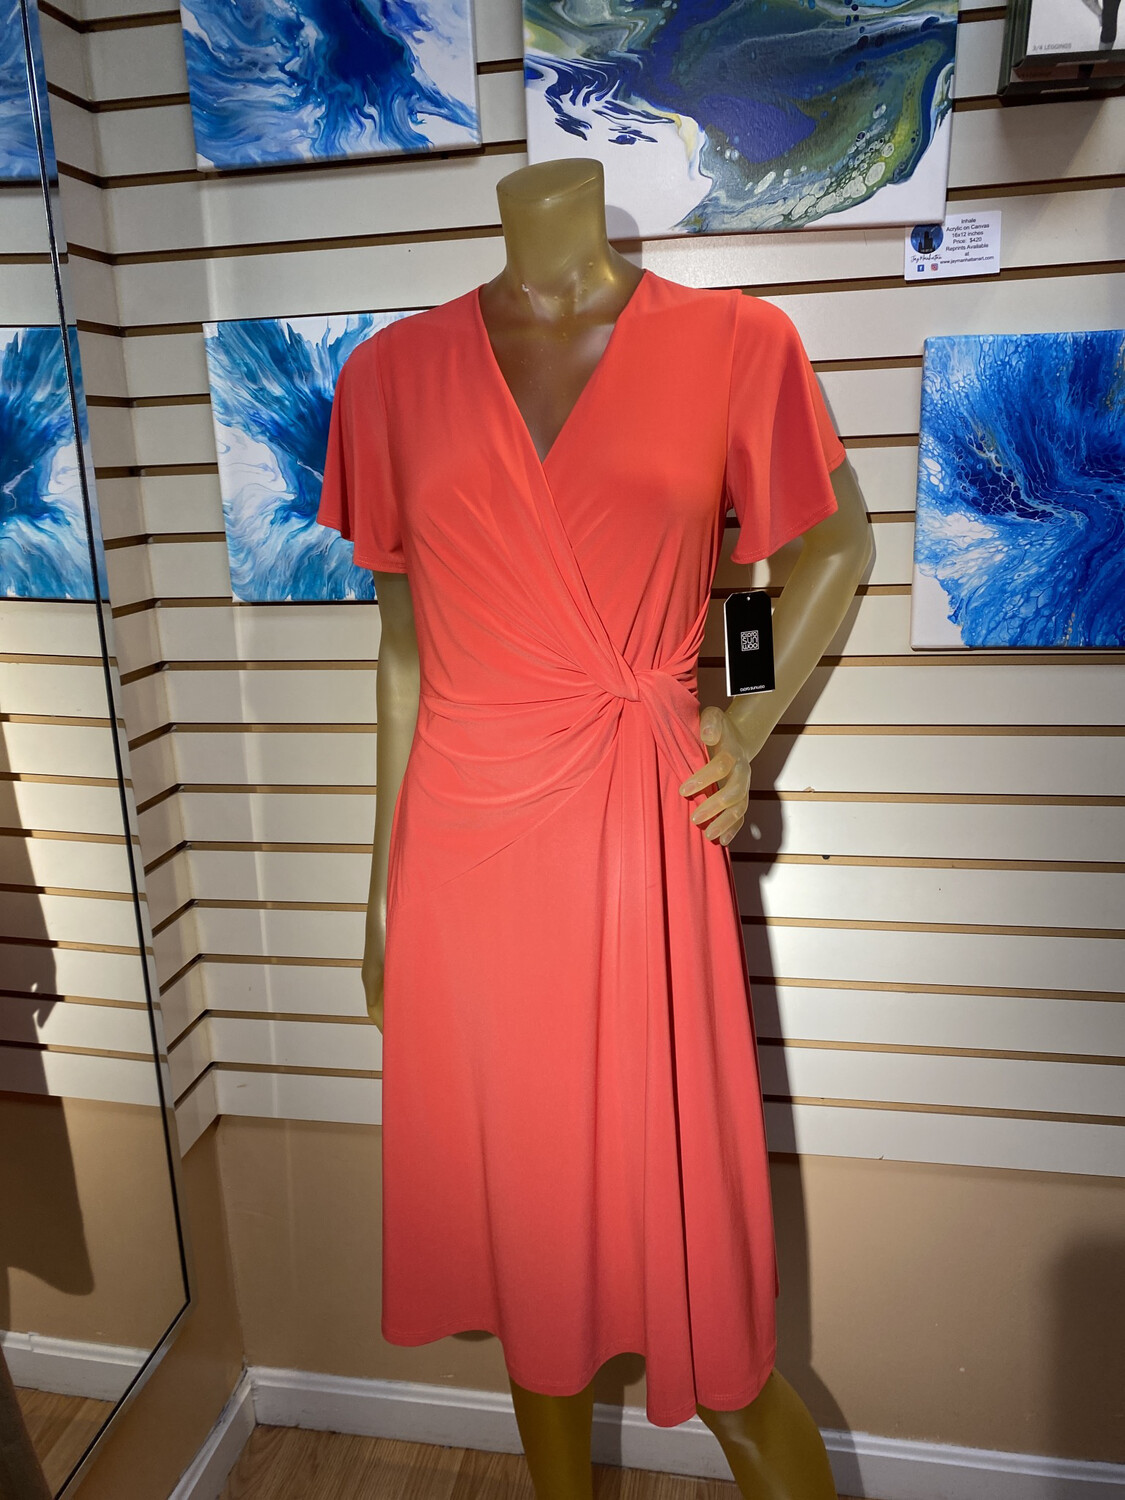 Major Deal Clara SunWoo Coral Dress. Made In USA Only 1 XL/16